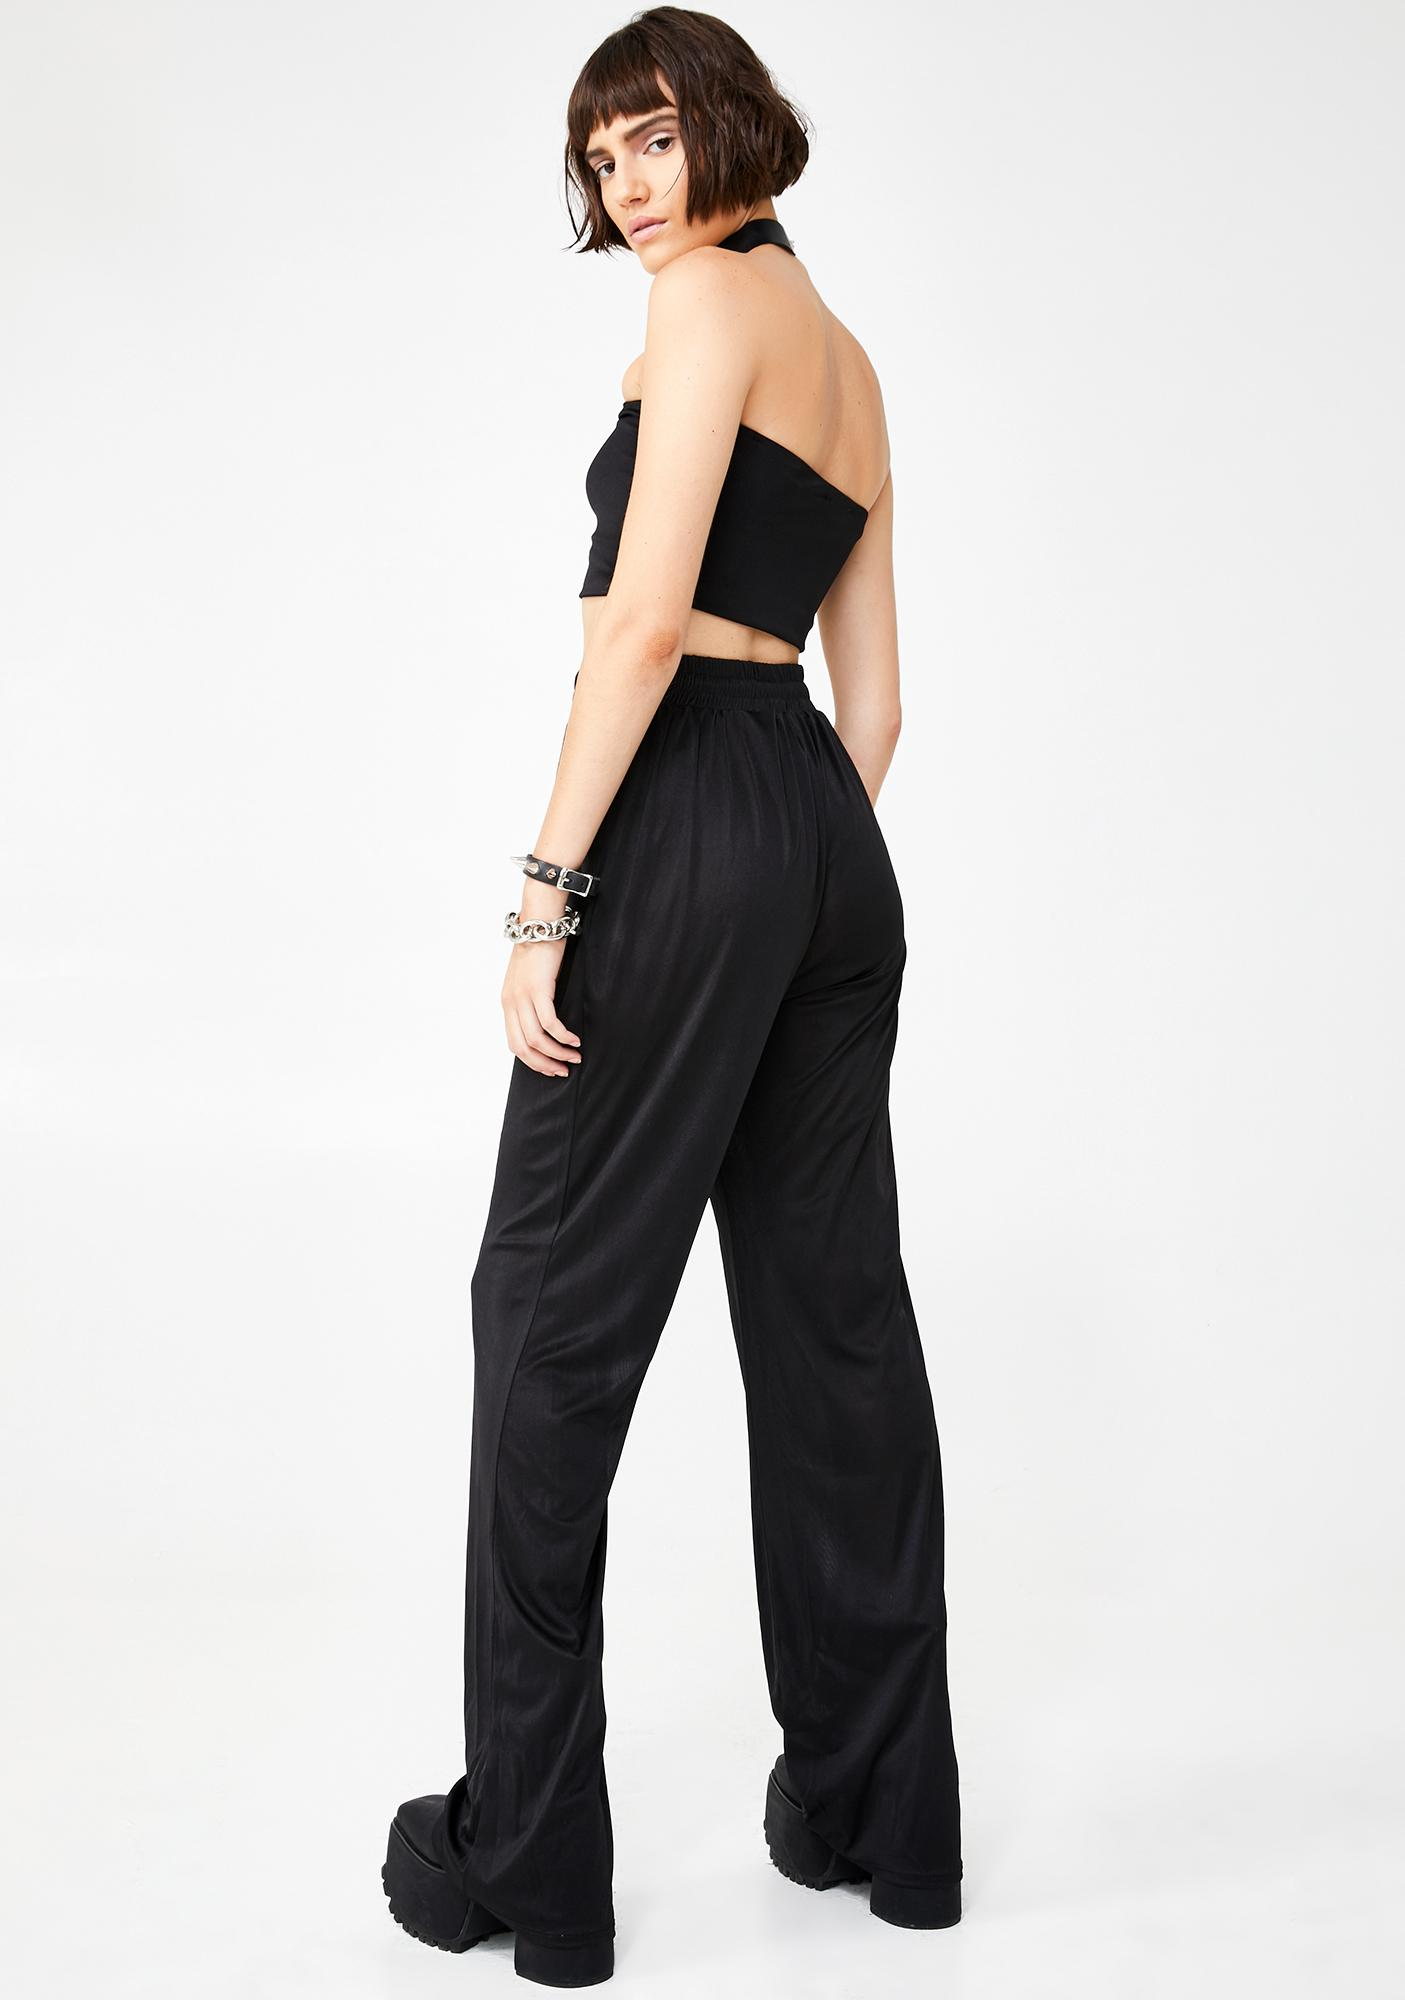 Baesic Mode Pant Set